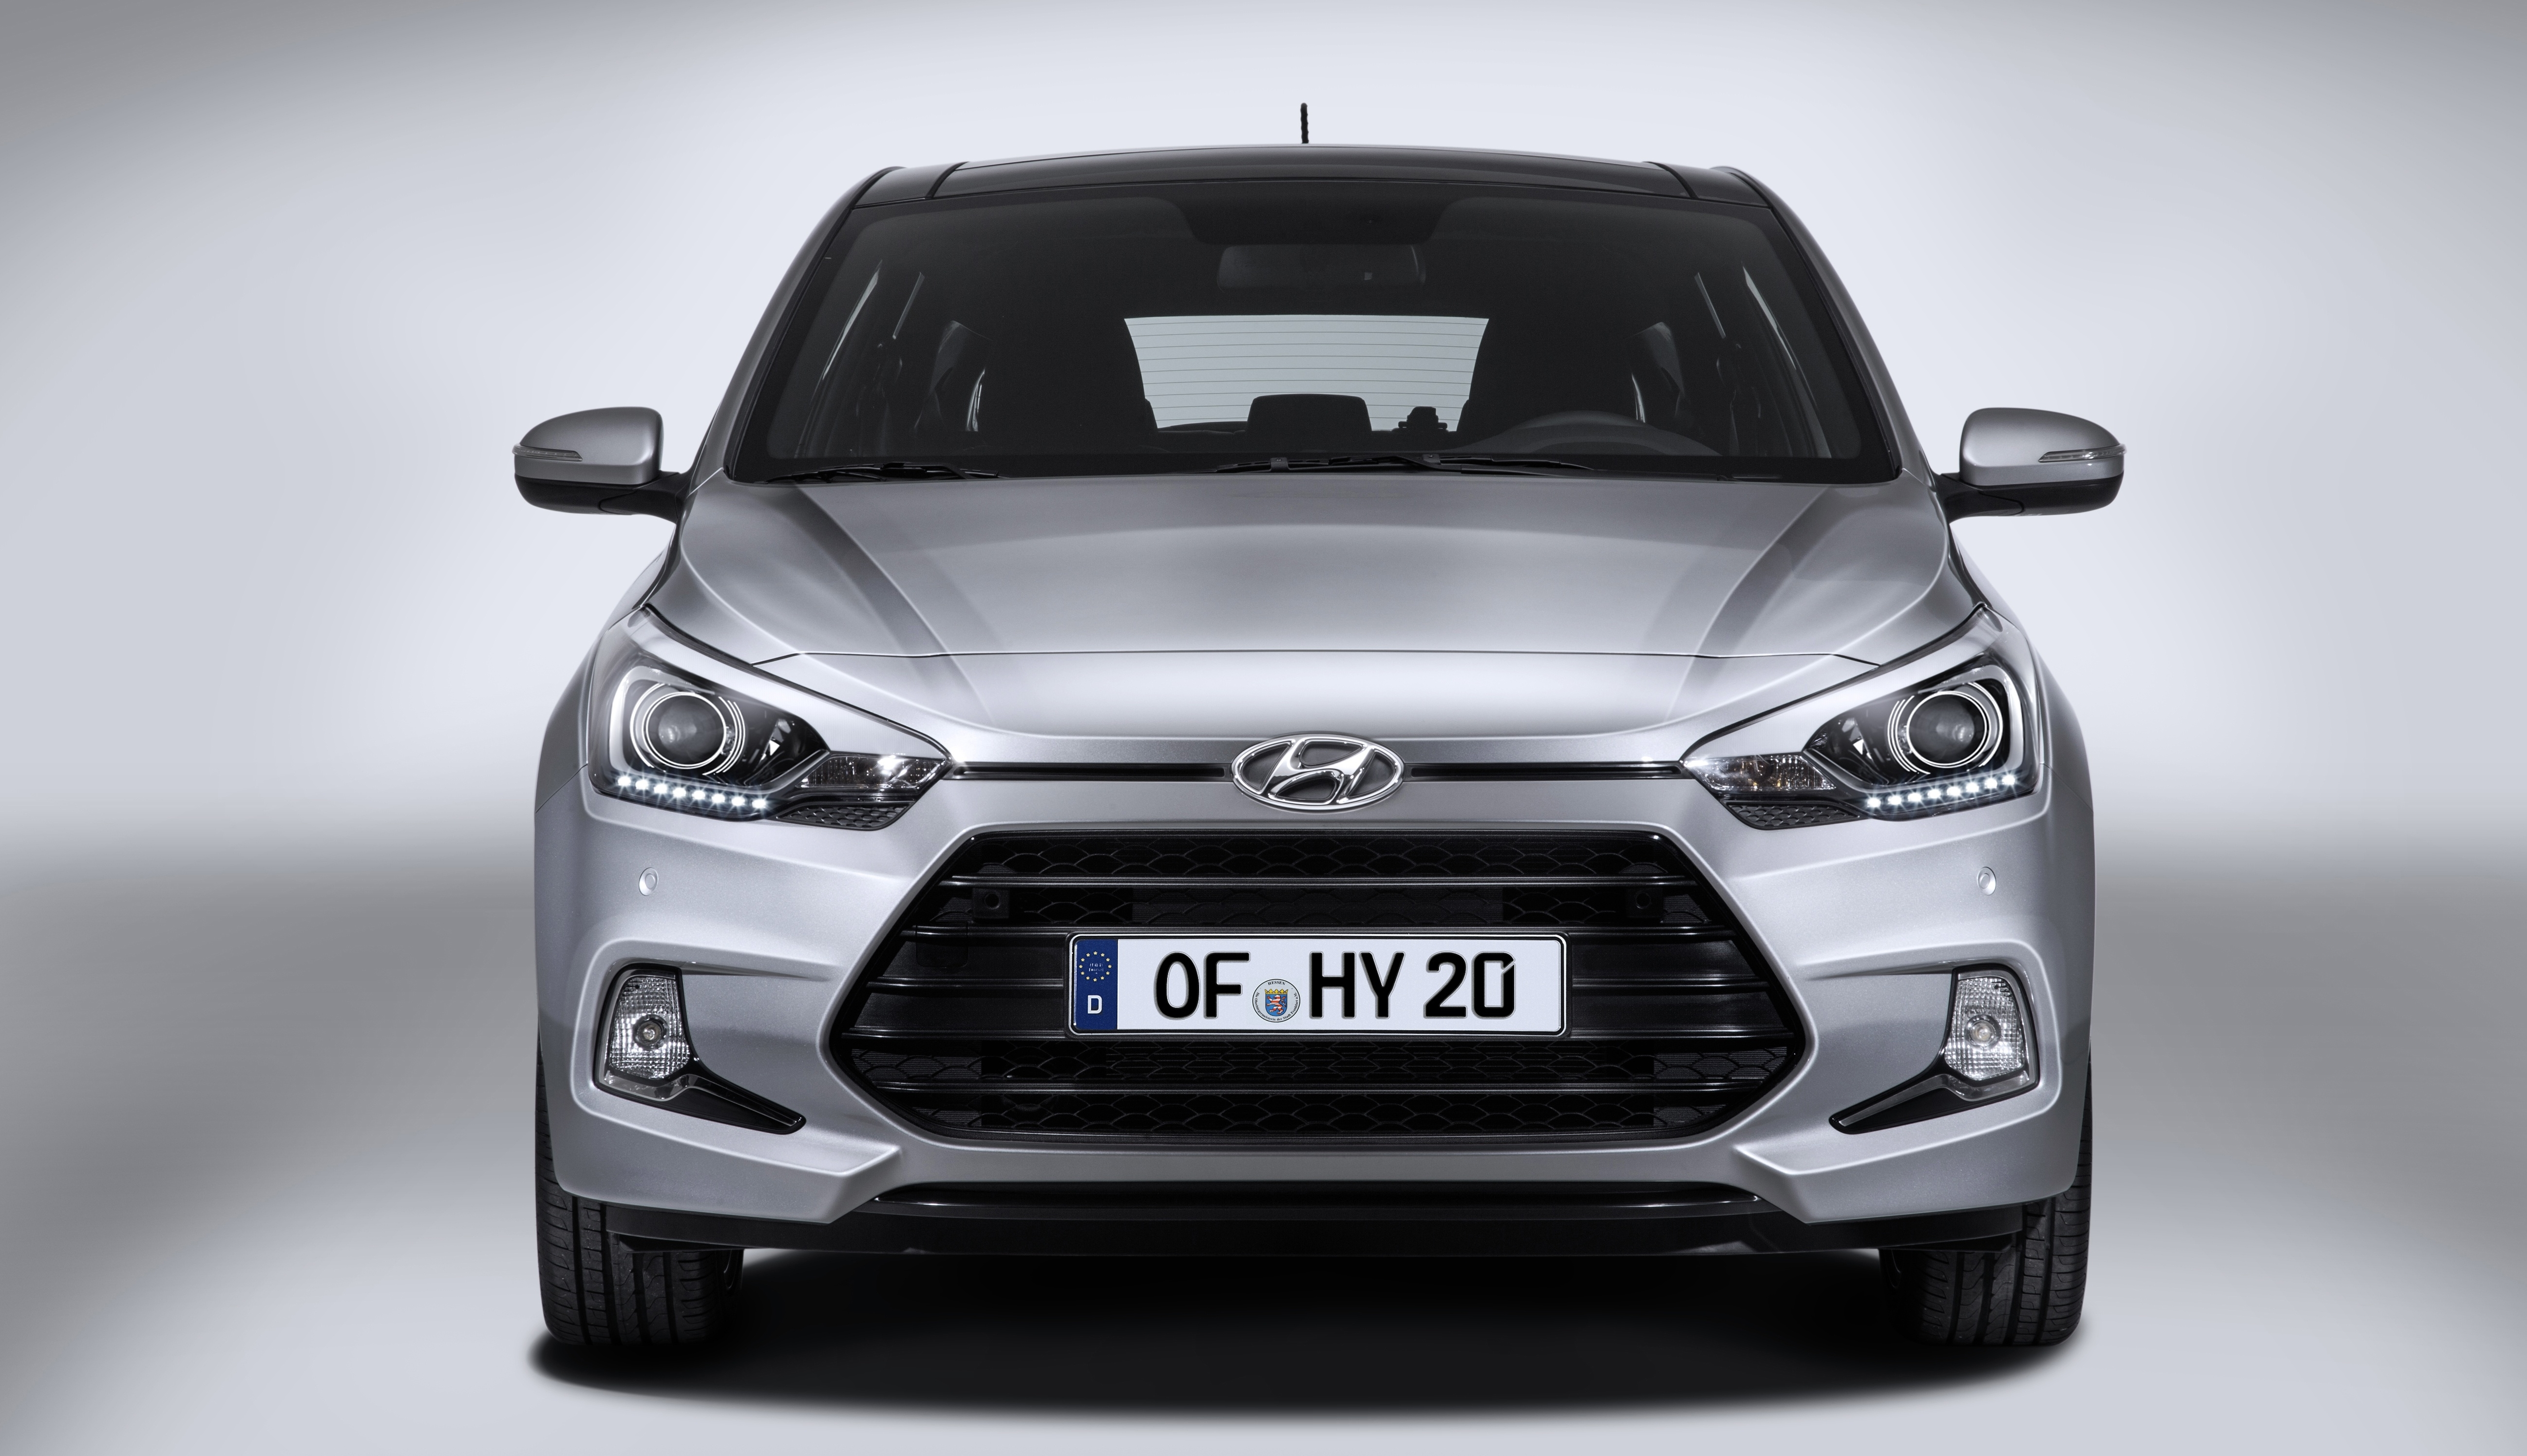 hyundai i20 coupe sporting up the three door route image 295155. Black Bedroom Furniture Sets. Home Design Ideas